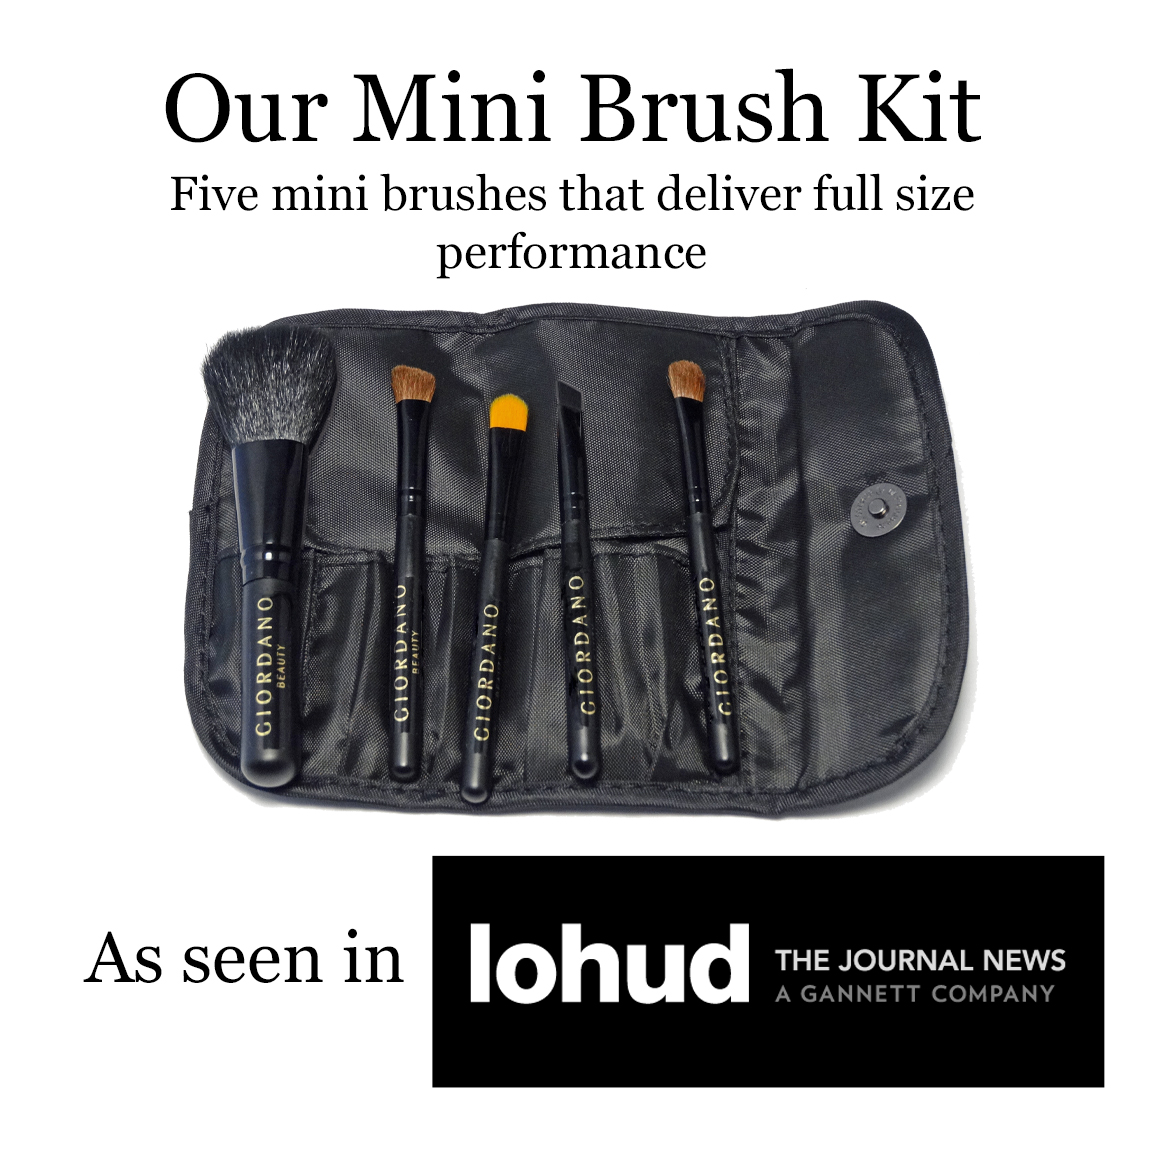 Mini Brush Kit in LoHud Journal News